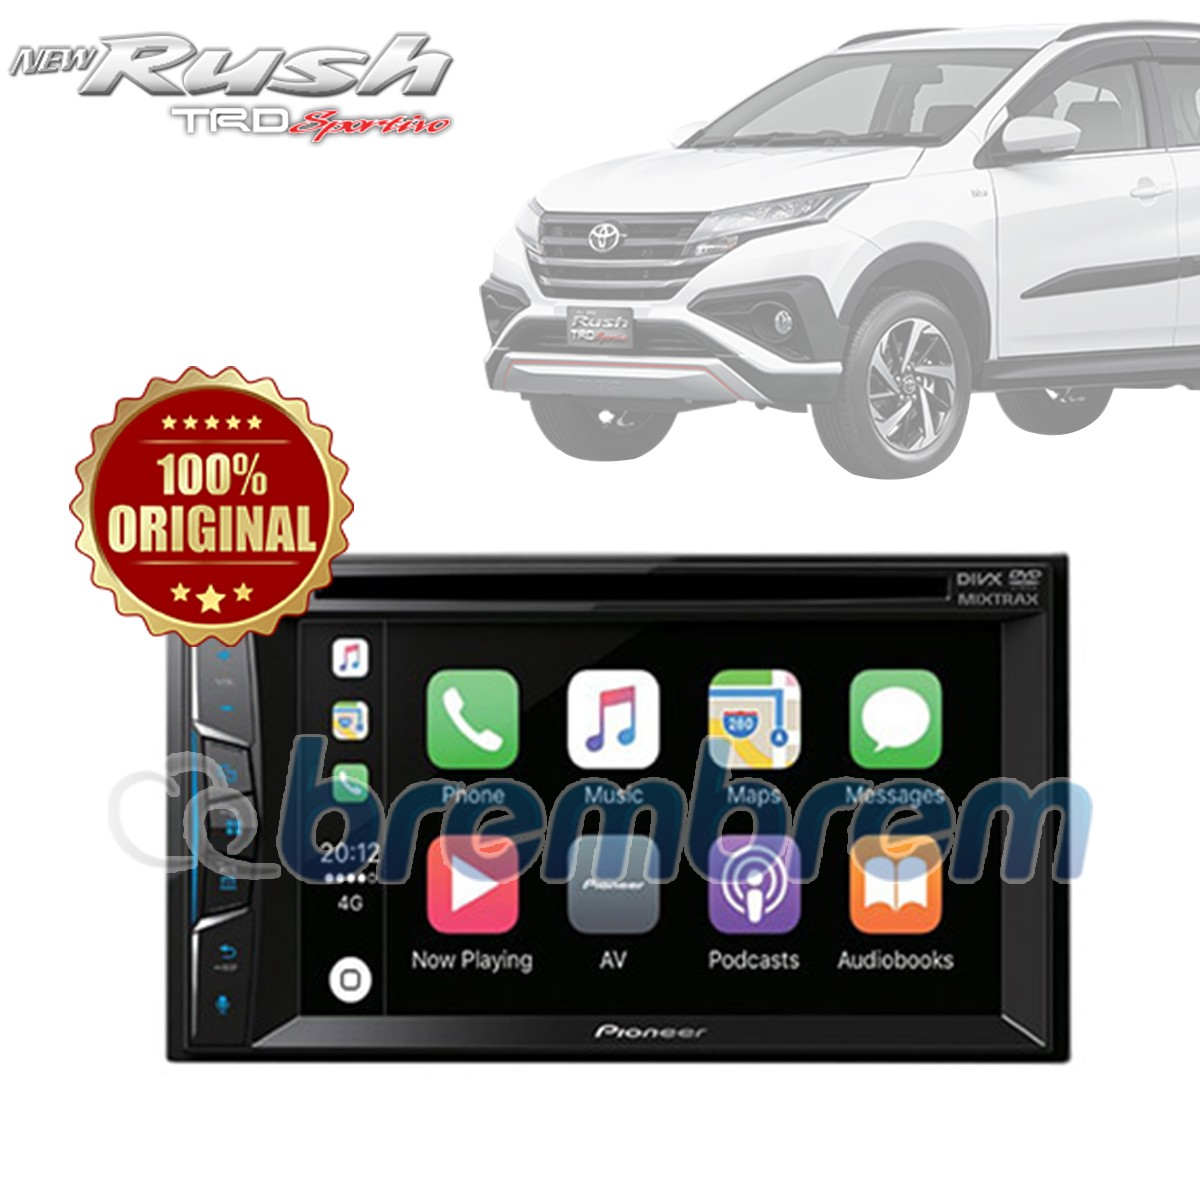 PIONEER AVH Z1050DVD - HEADUNIT DOUBLE DIN TOYOTA ALL NEW RUSH + SOKET TOYOTA